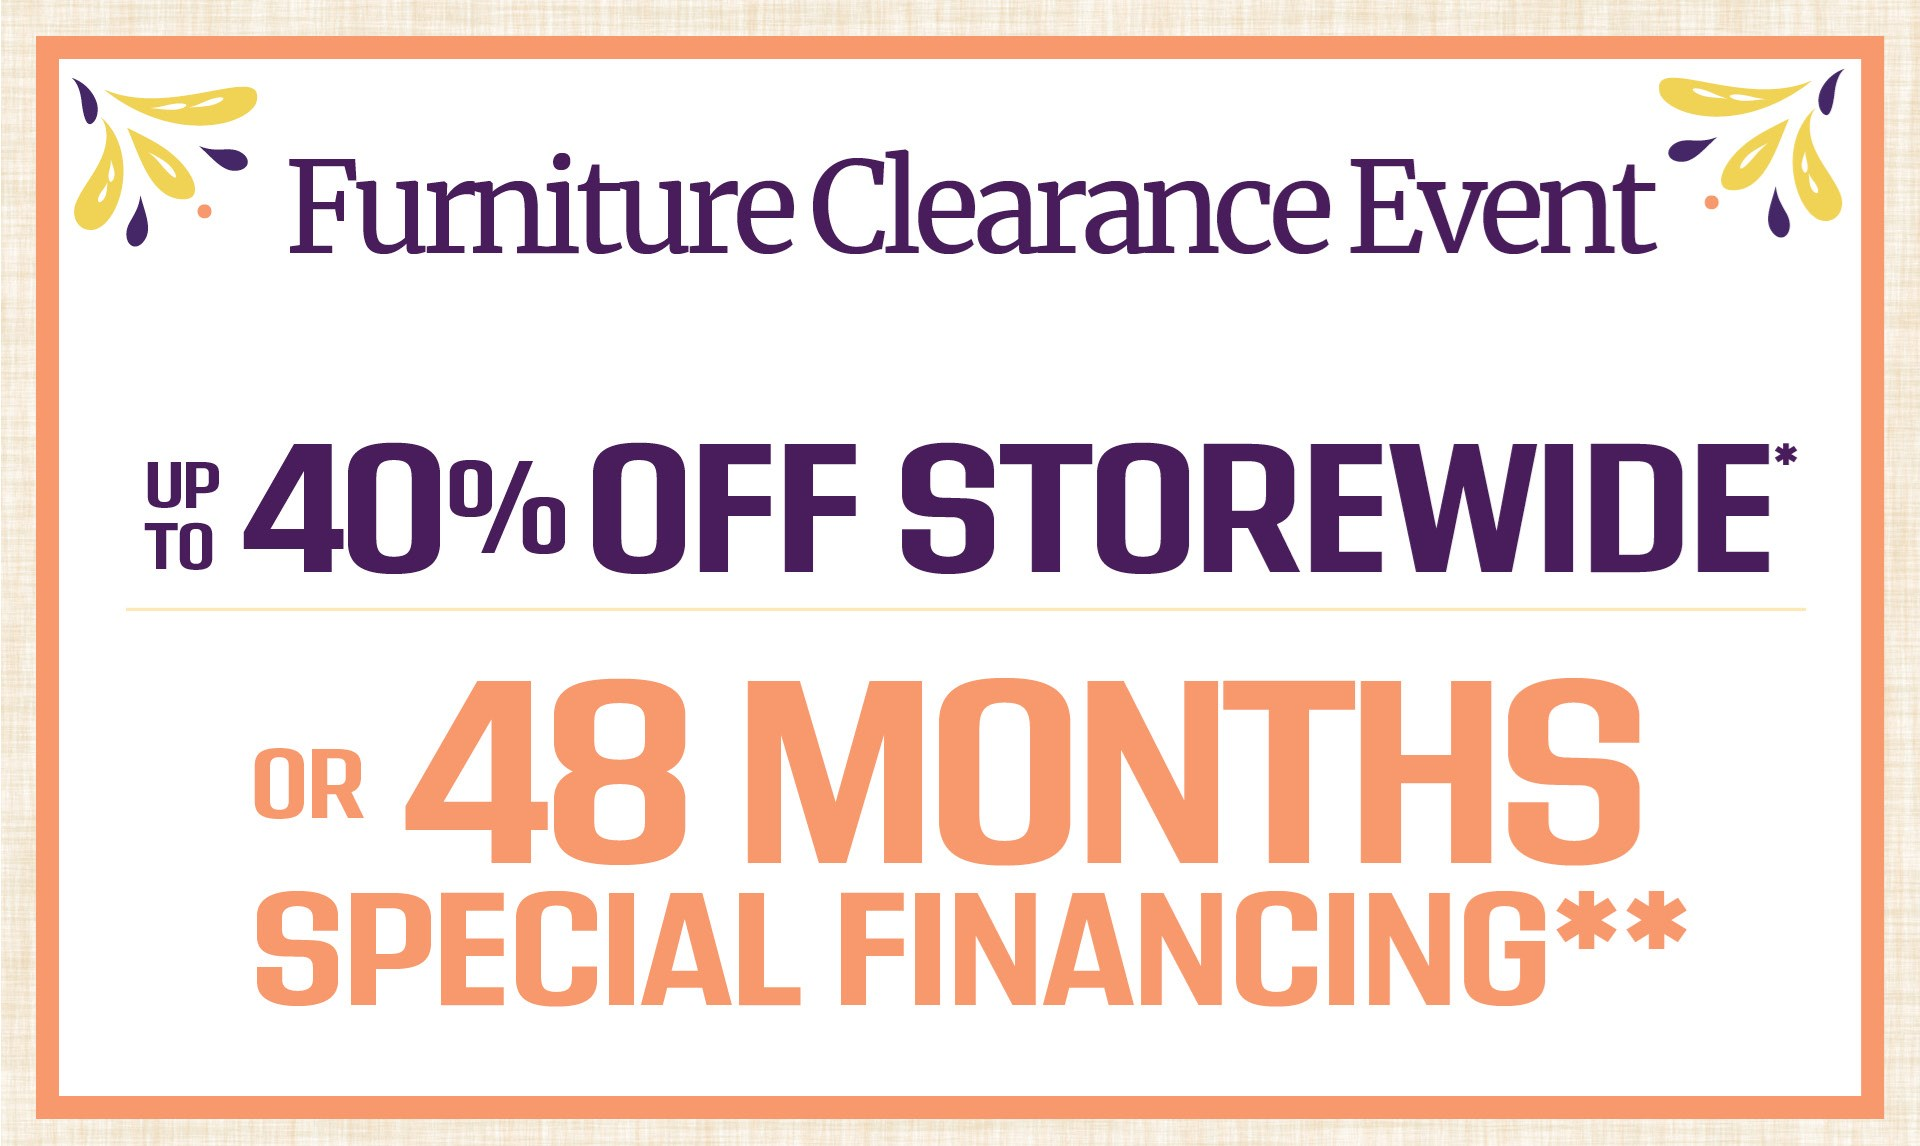 Up to 40% Off Storewide* or 48 Months Special Financing**